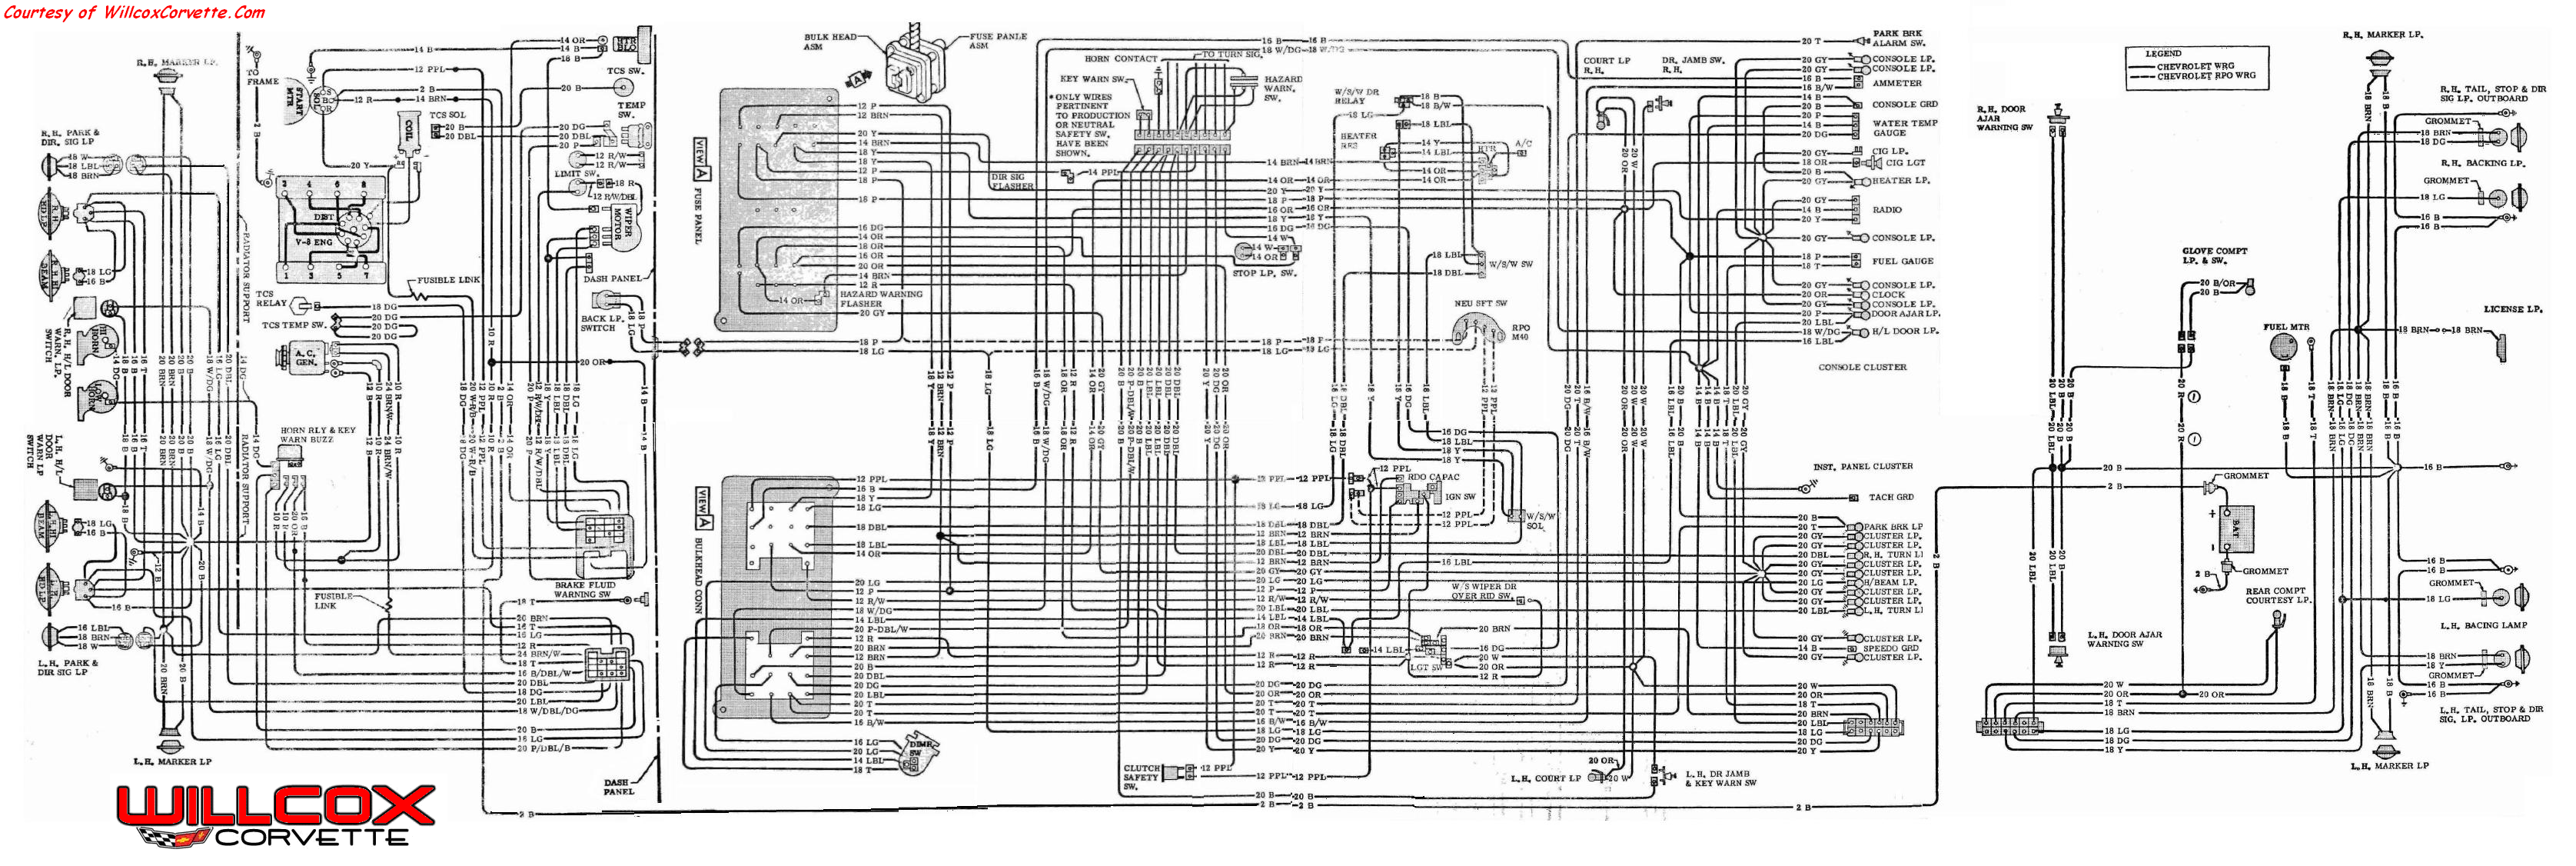 68 chevelle wiring diagram free download schematic  | 2200 x 1600